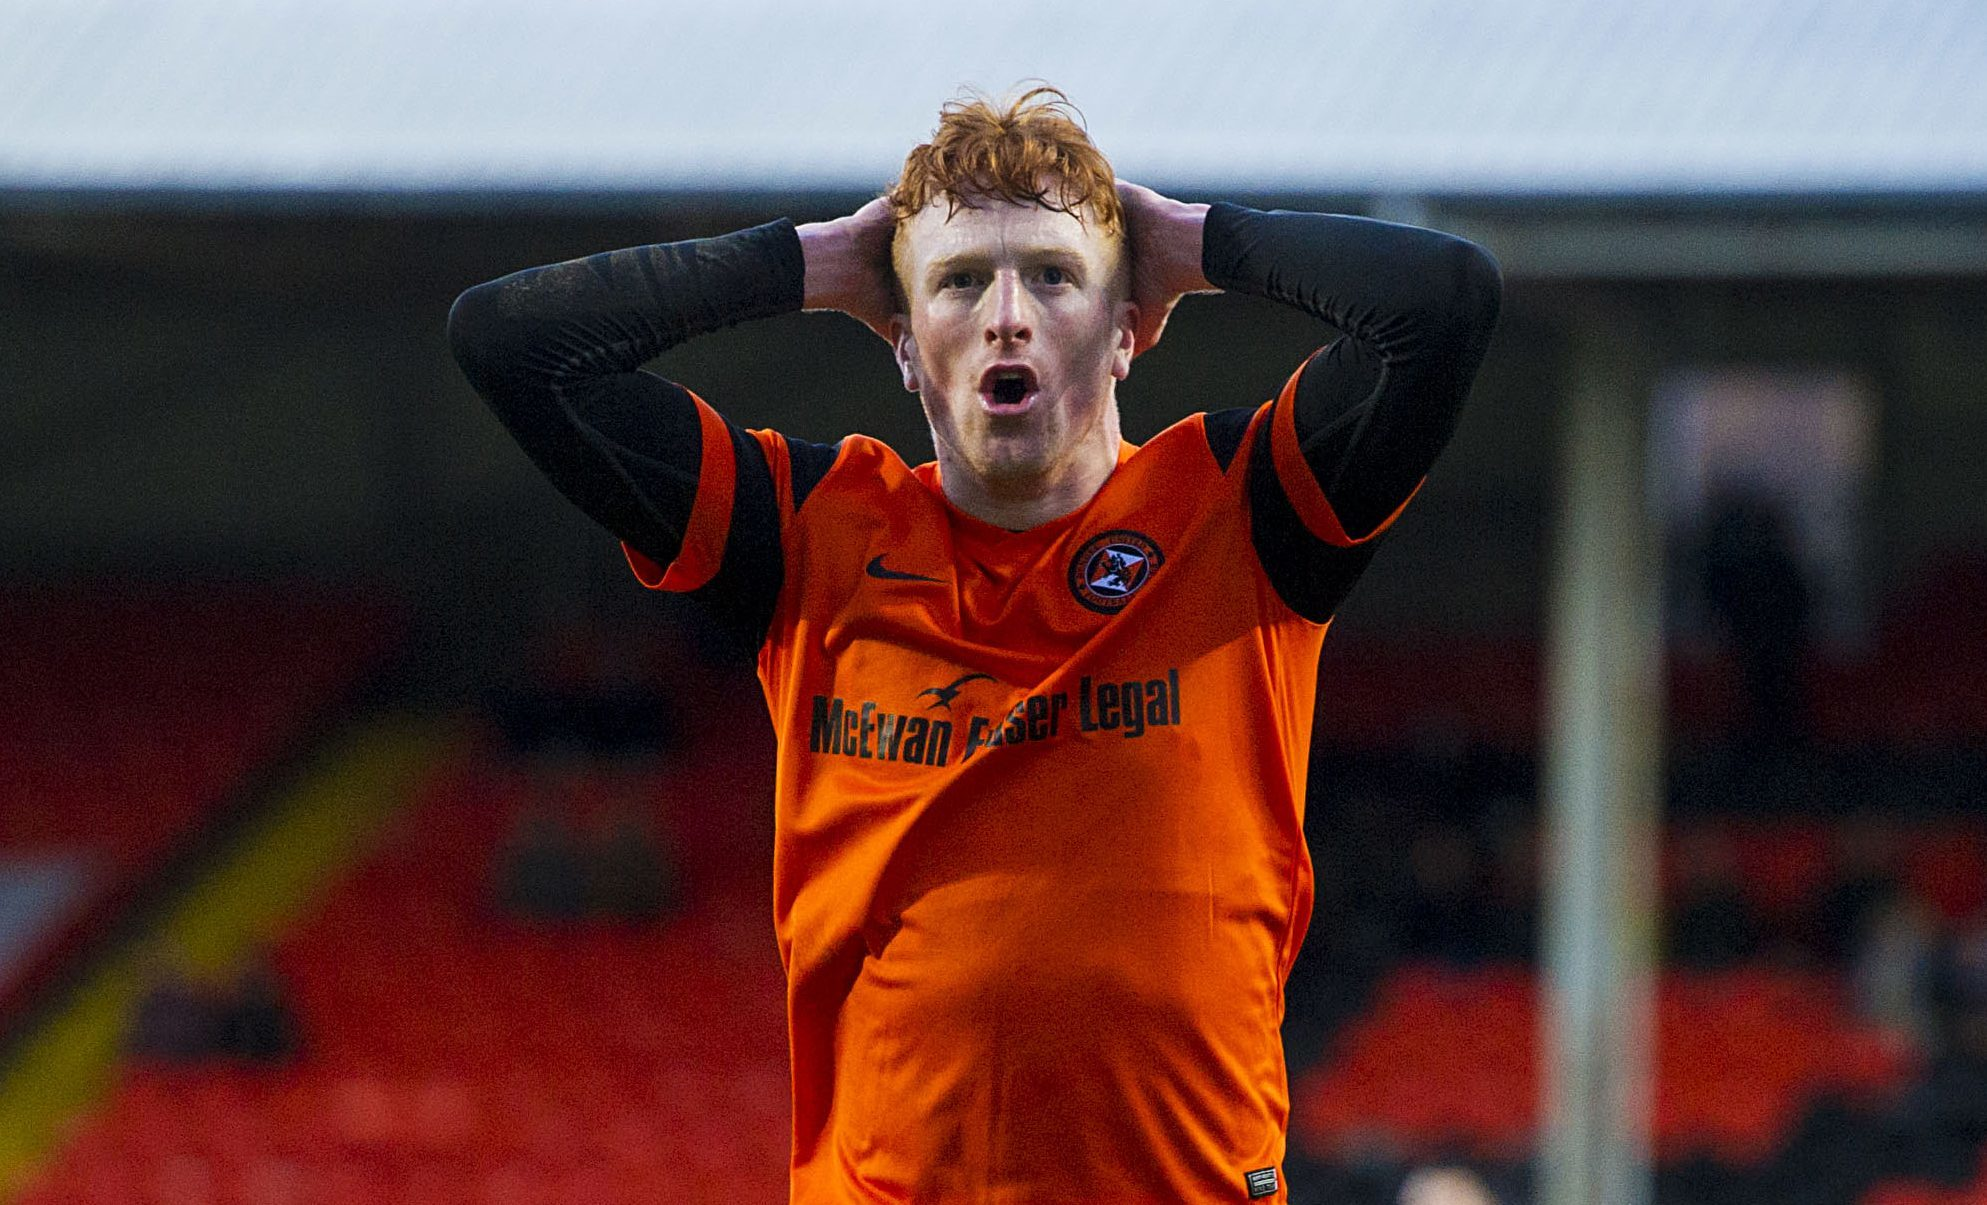 Simon Murray had an excellent game on Saturday but it wasn't an excellent result for his team.